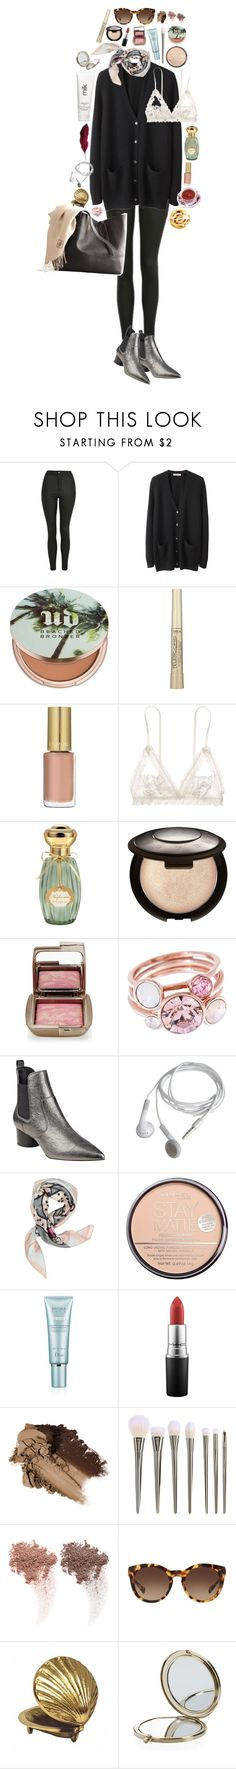 """""""Black #5"""" by triomphevictorieuse ❤ liked on Polyvore featuring Topshop, Organic by John Patrick, Urban Decay, L'Oréal Paris, Hanky Panky, Annick Goutal, Becca, Hourglass Cosmetics, Ted Baker and Kendall + Kylie"""